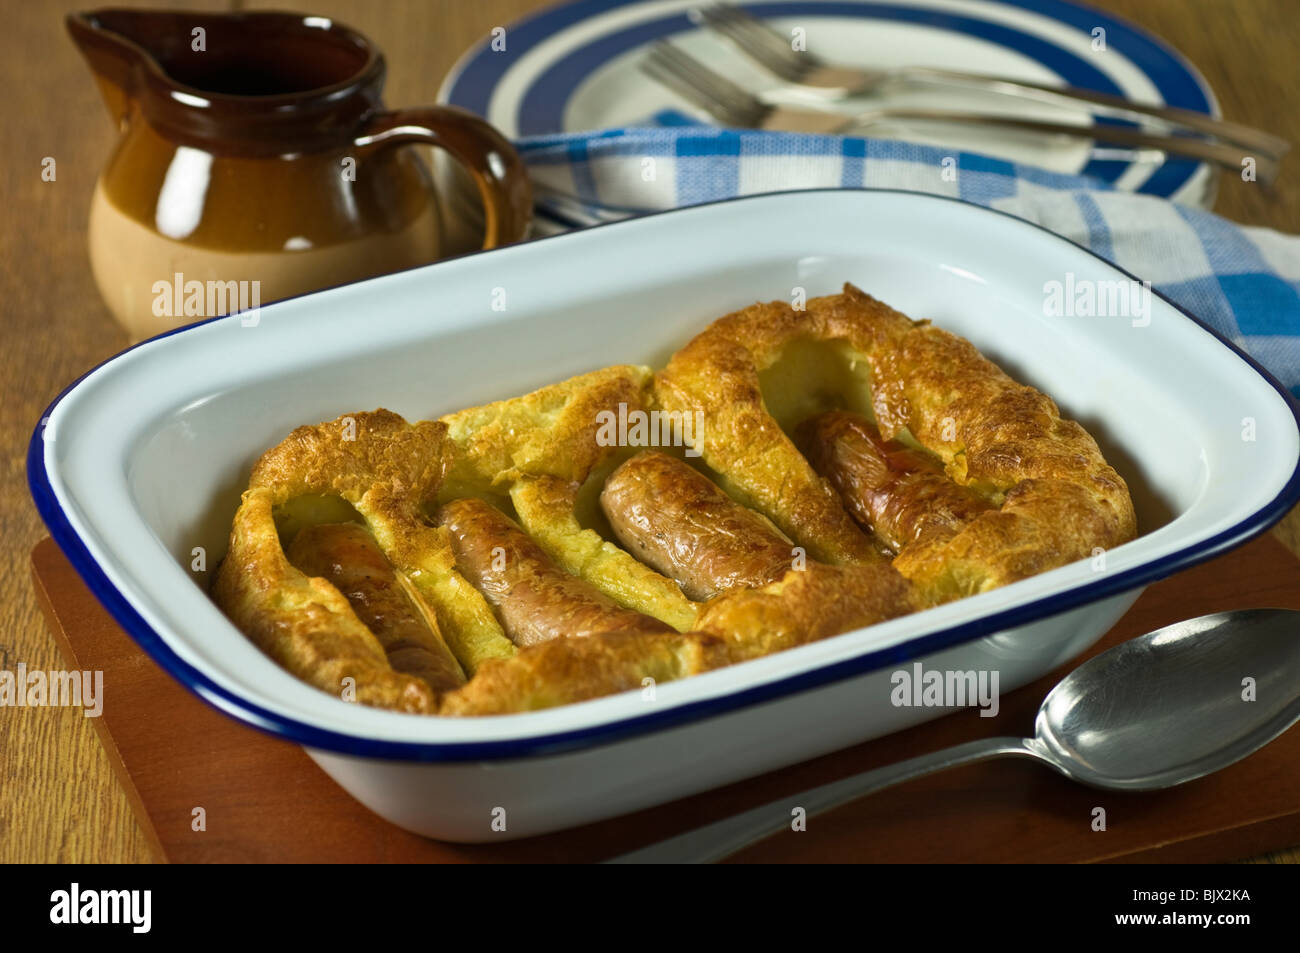 Toad in the hole Food UK - Stock Image